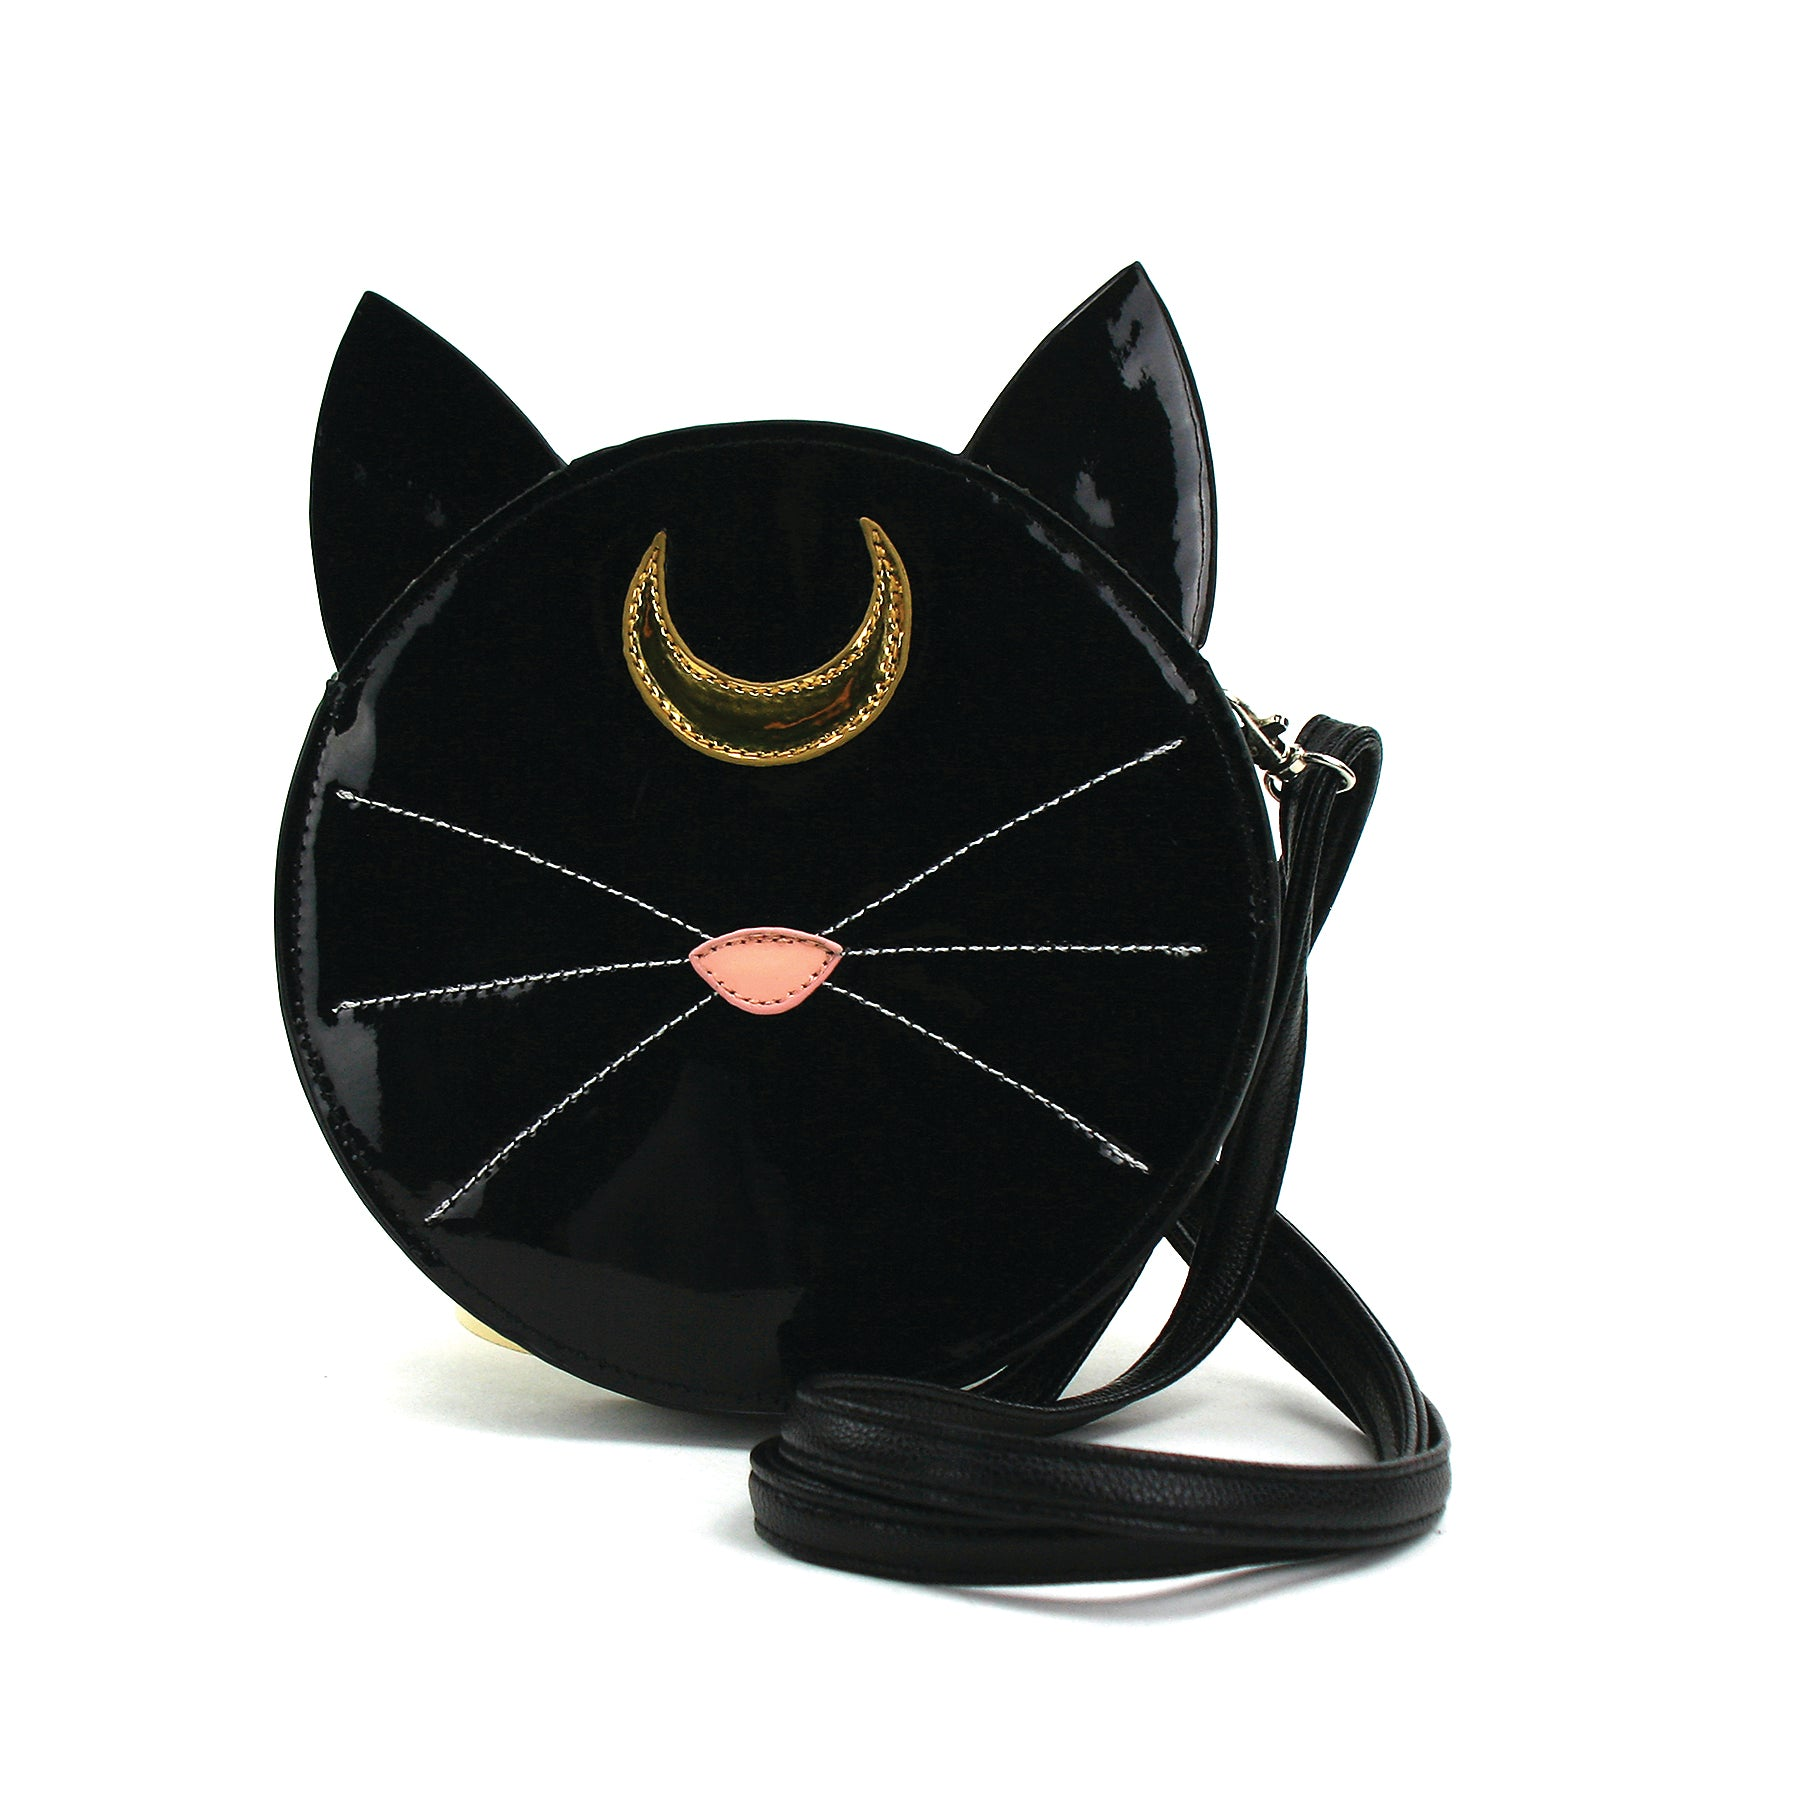 Mystical Black Cat Face Crossbody Bag in Vinyl front view